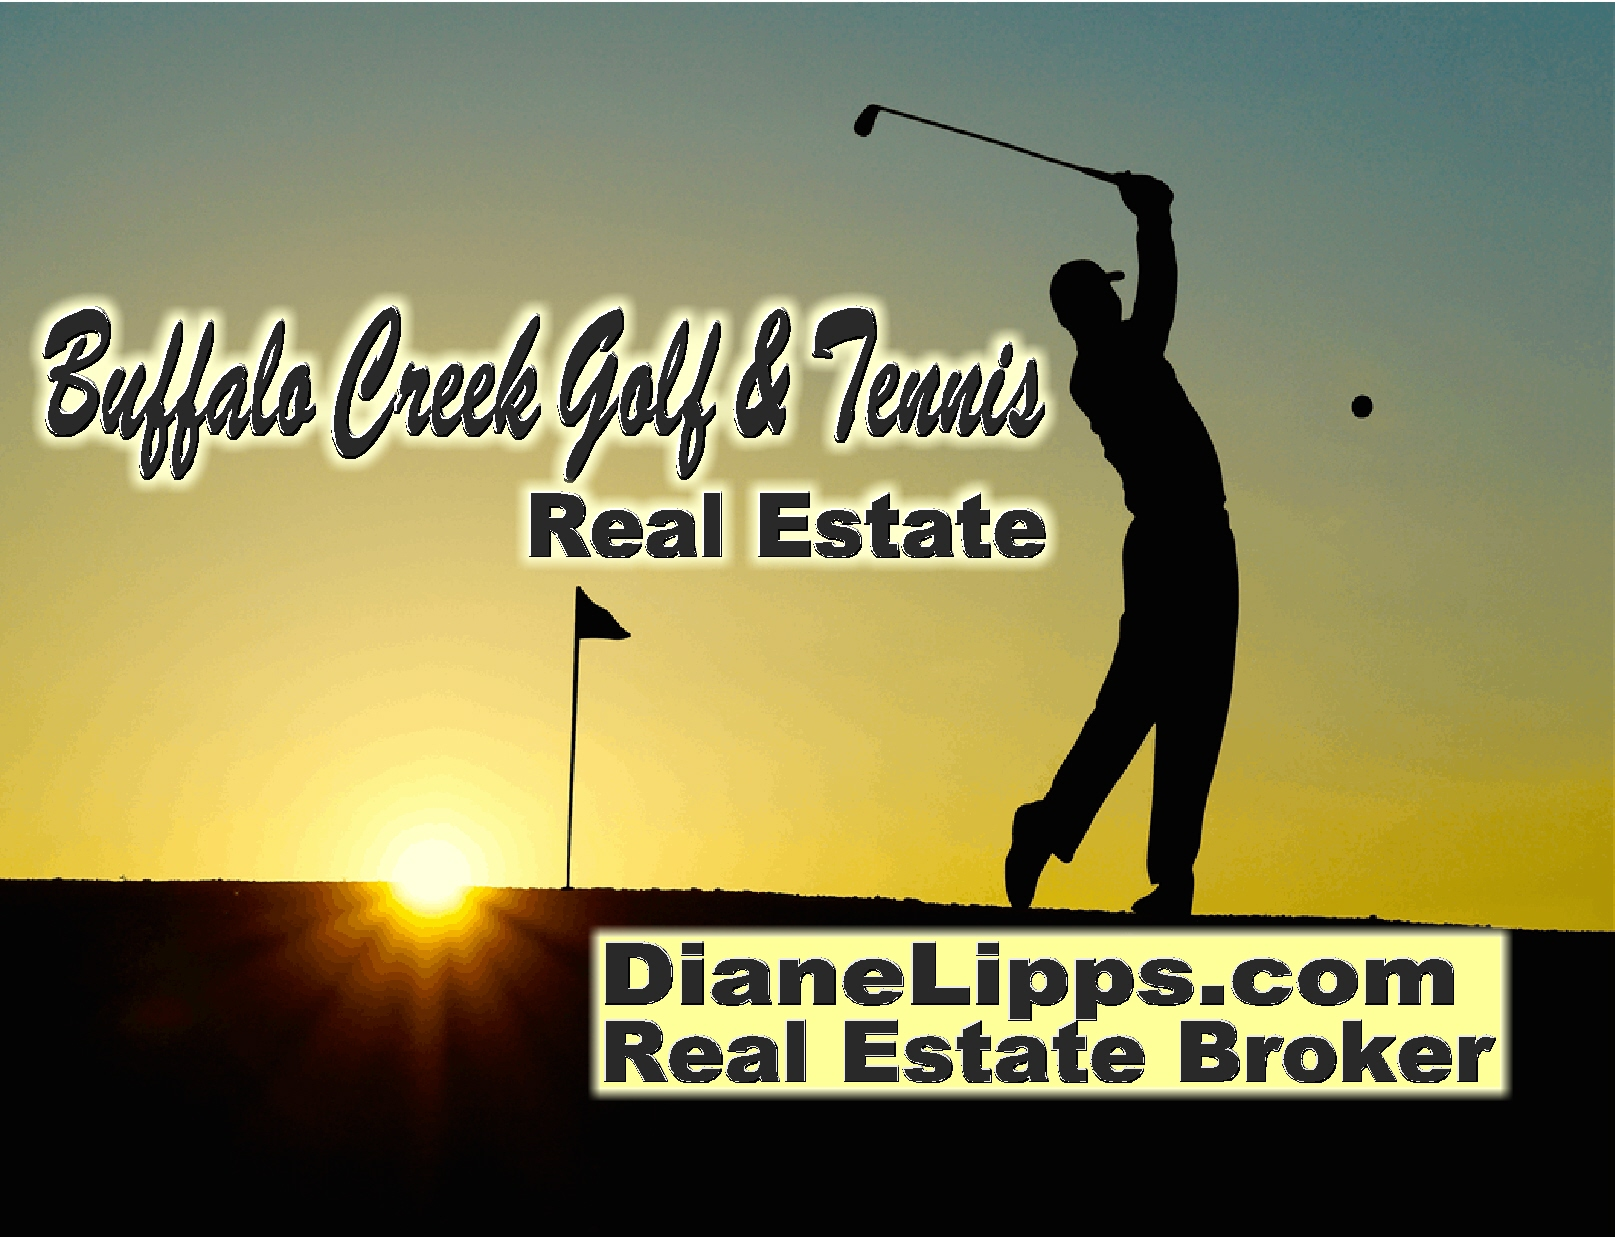 Buffalo Creek Homes for Sale Heath Texas Diane Lipps your Buffalo Creek Golf and Tennis Country Club Real Estate Broker